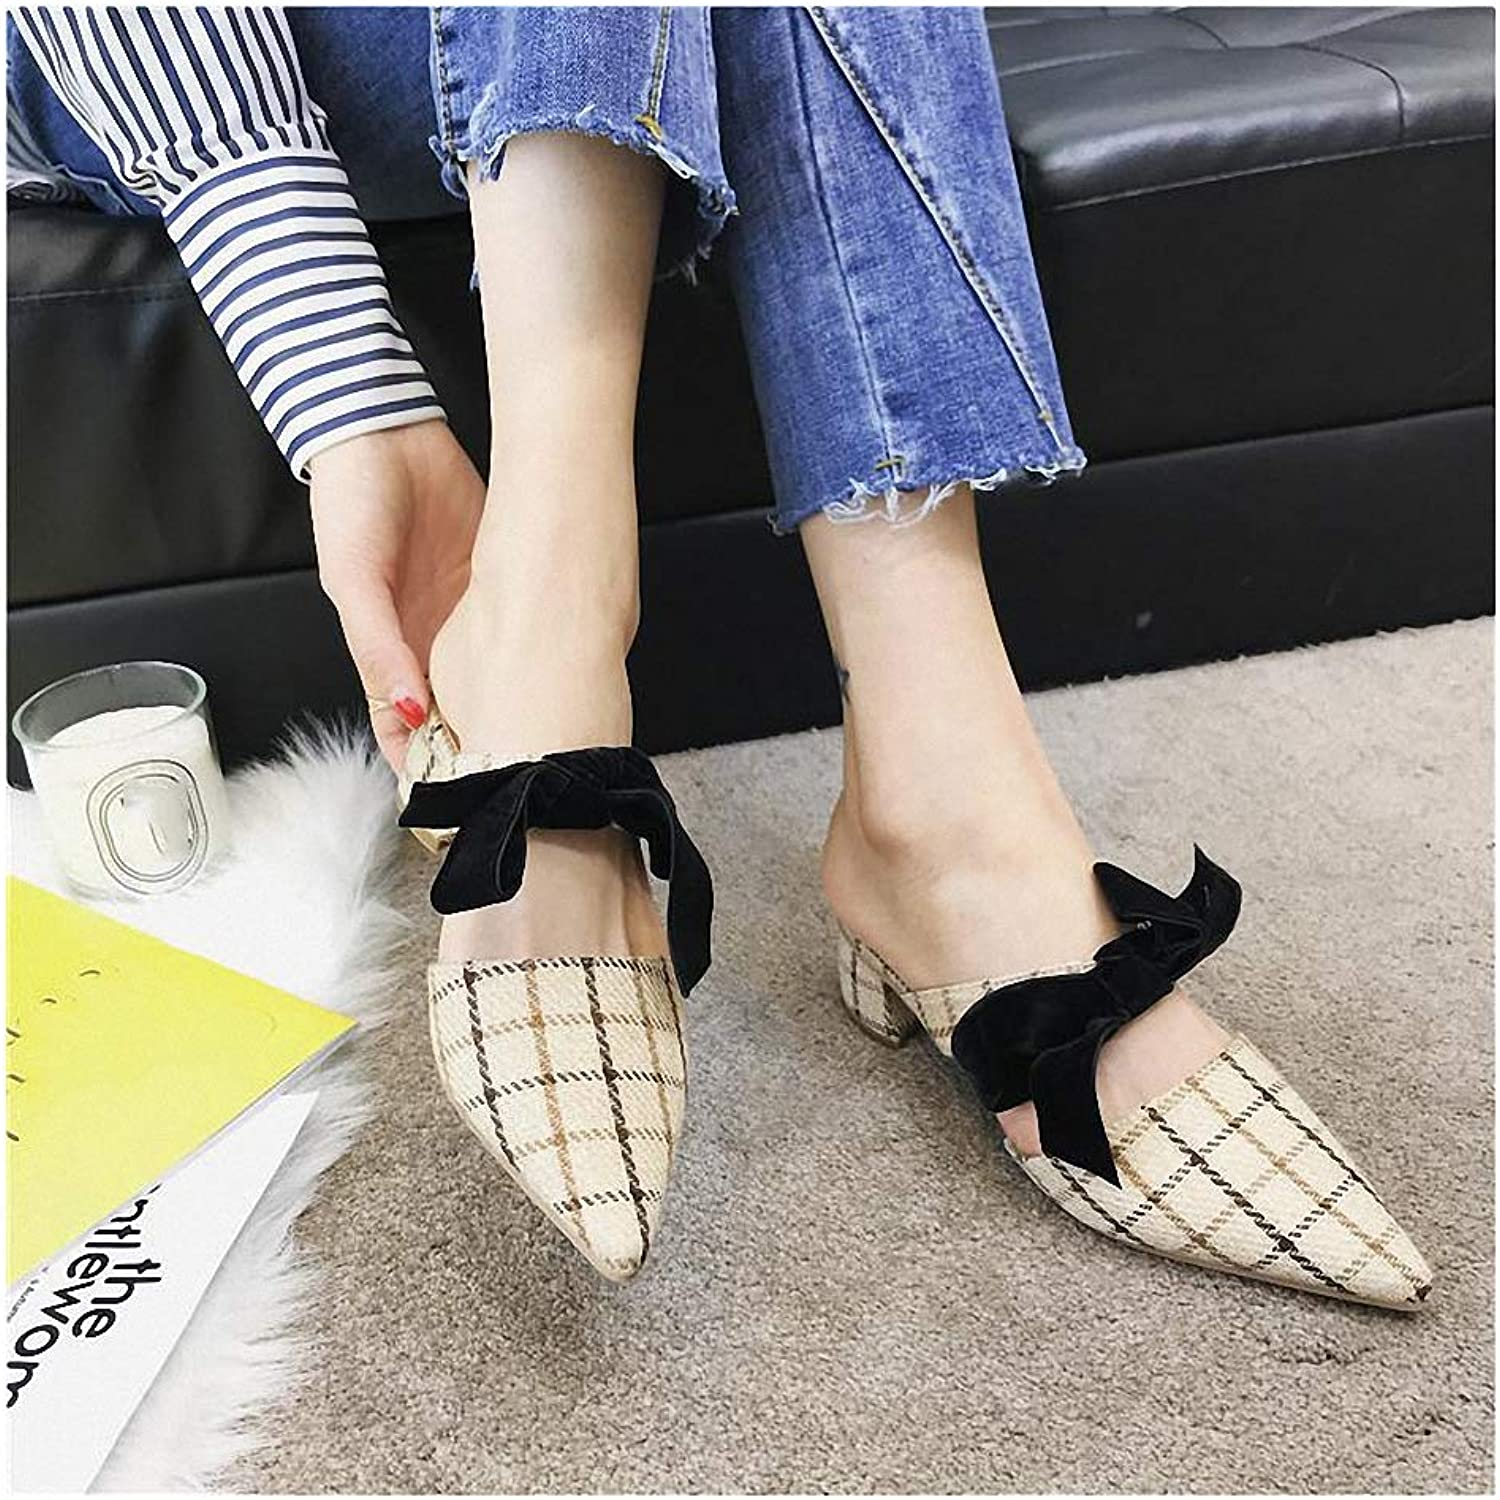 Womens Low-Heeled Sandal shoes New Sandals Female Slippers Female Plaid Cloth Heel shoes Bow Mules and Slippers